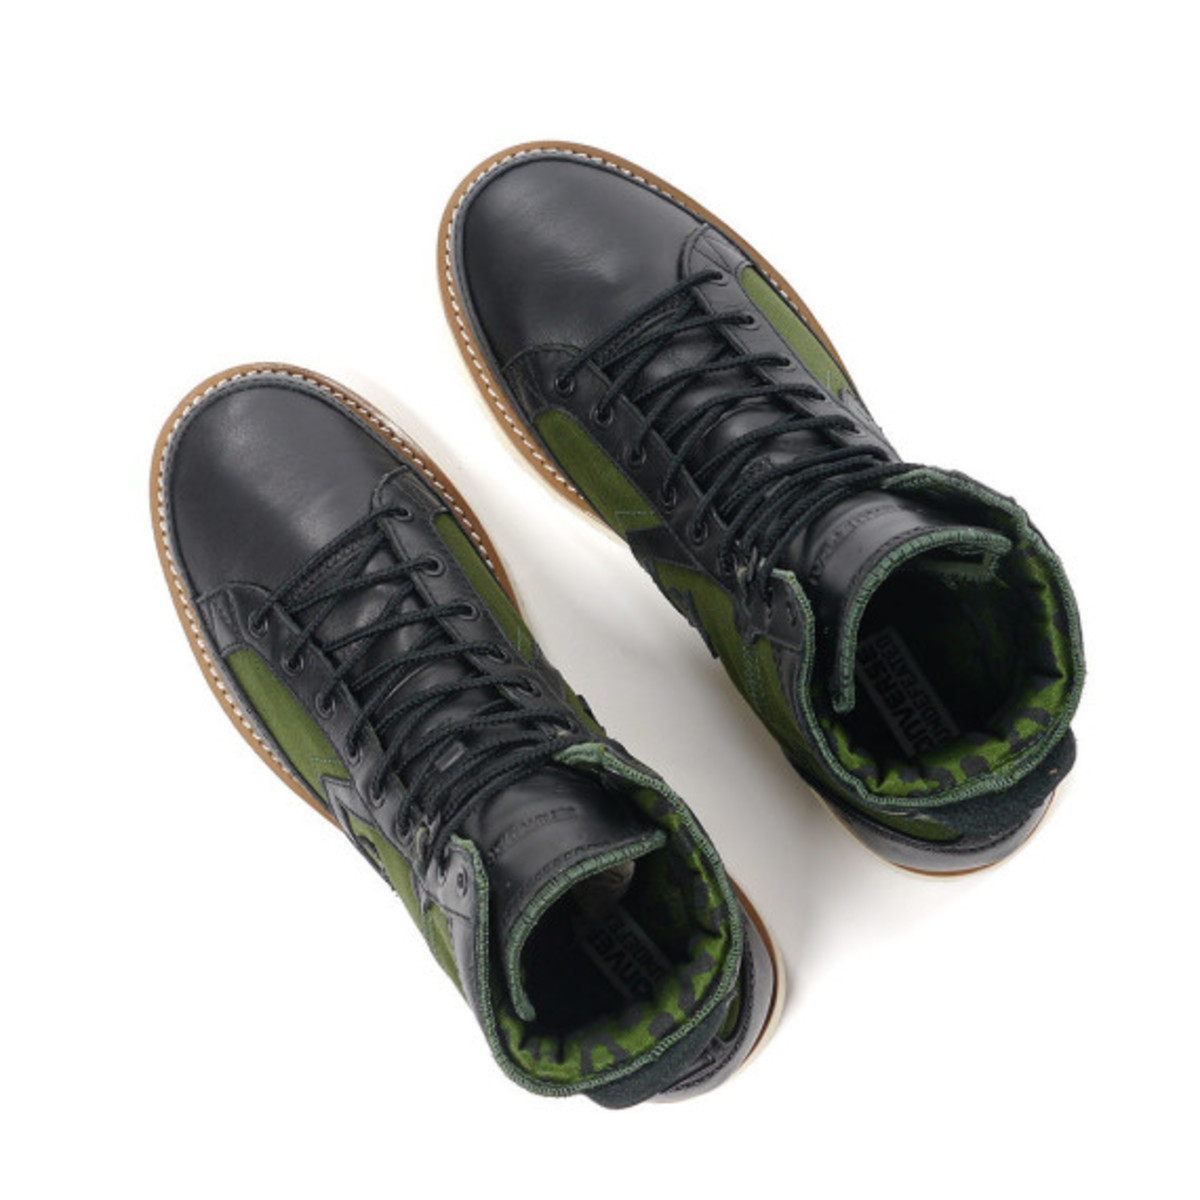 UNDEFEATED x CONVERSE Pro Field Hi   Available Now - 6